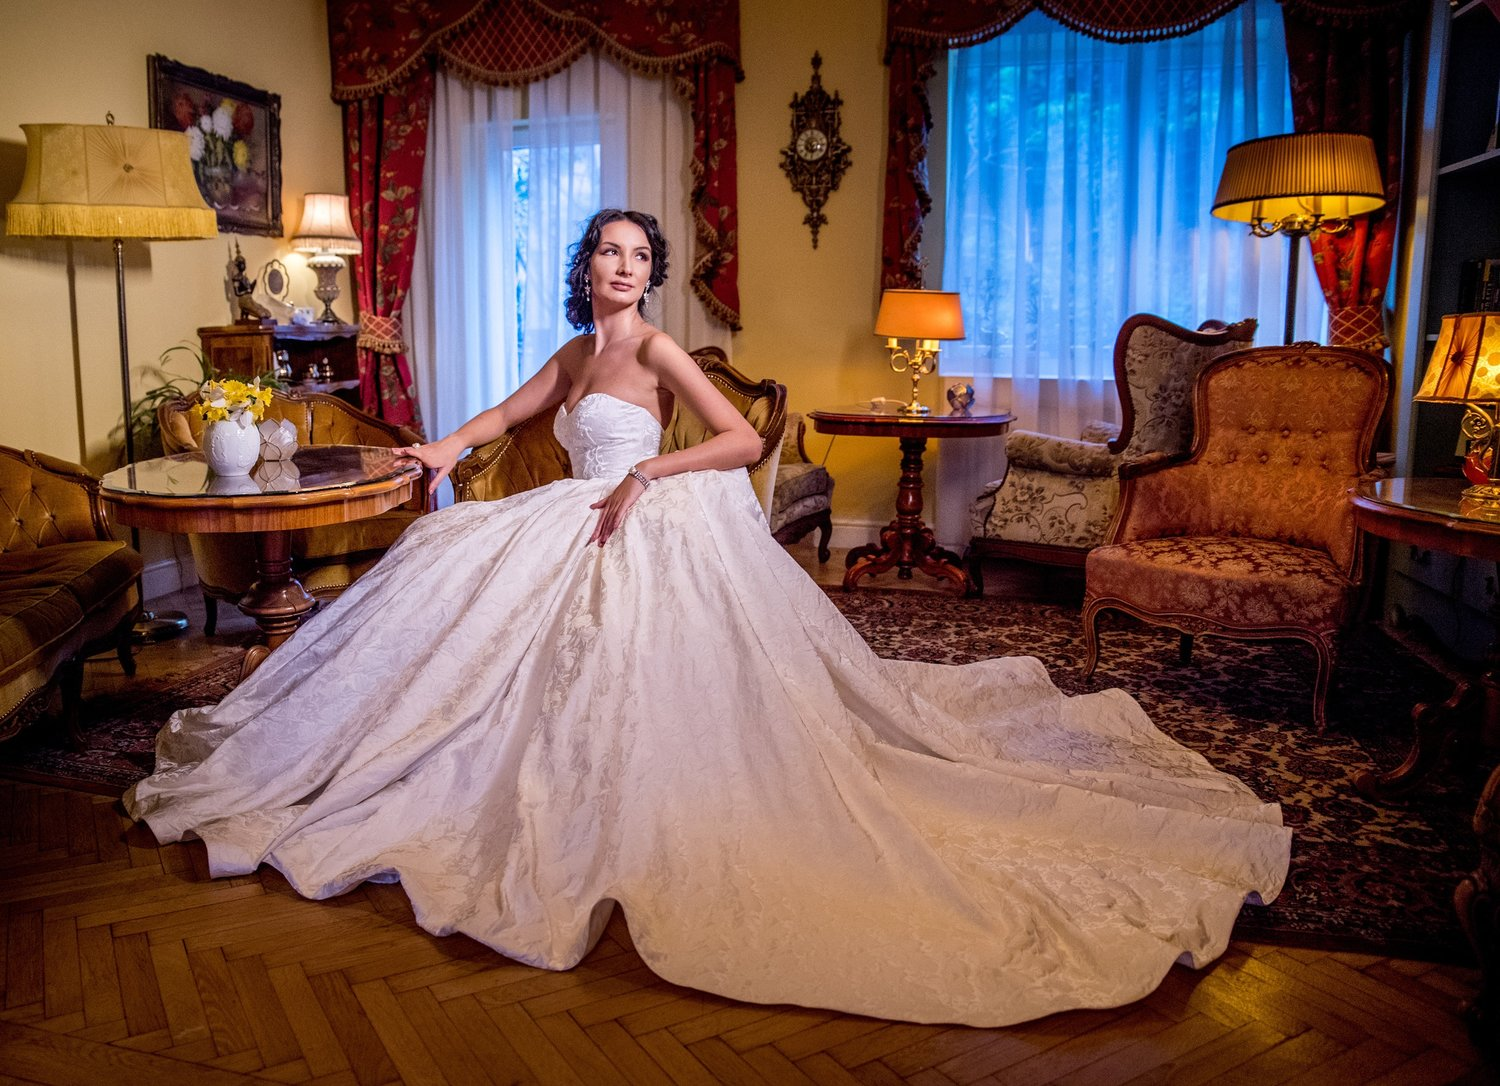 Featured:  Amaryllis , ball gown wedding dress crafted in fine brocart, with sweetheart bodice and a long, royal train